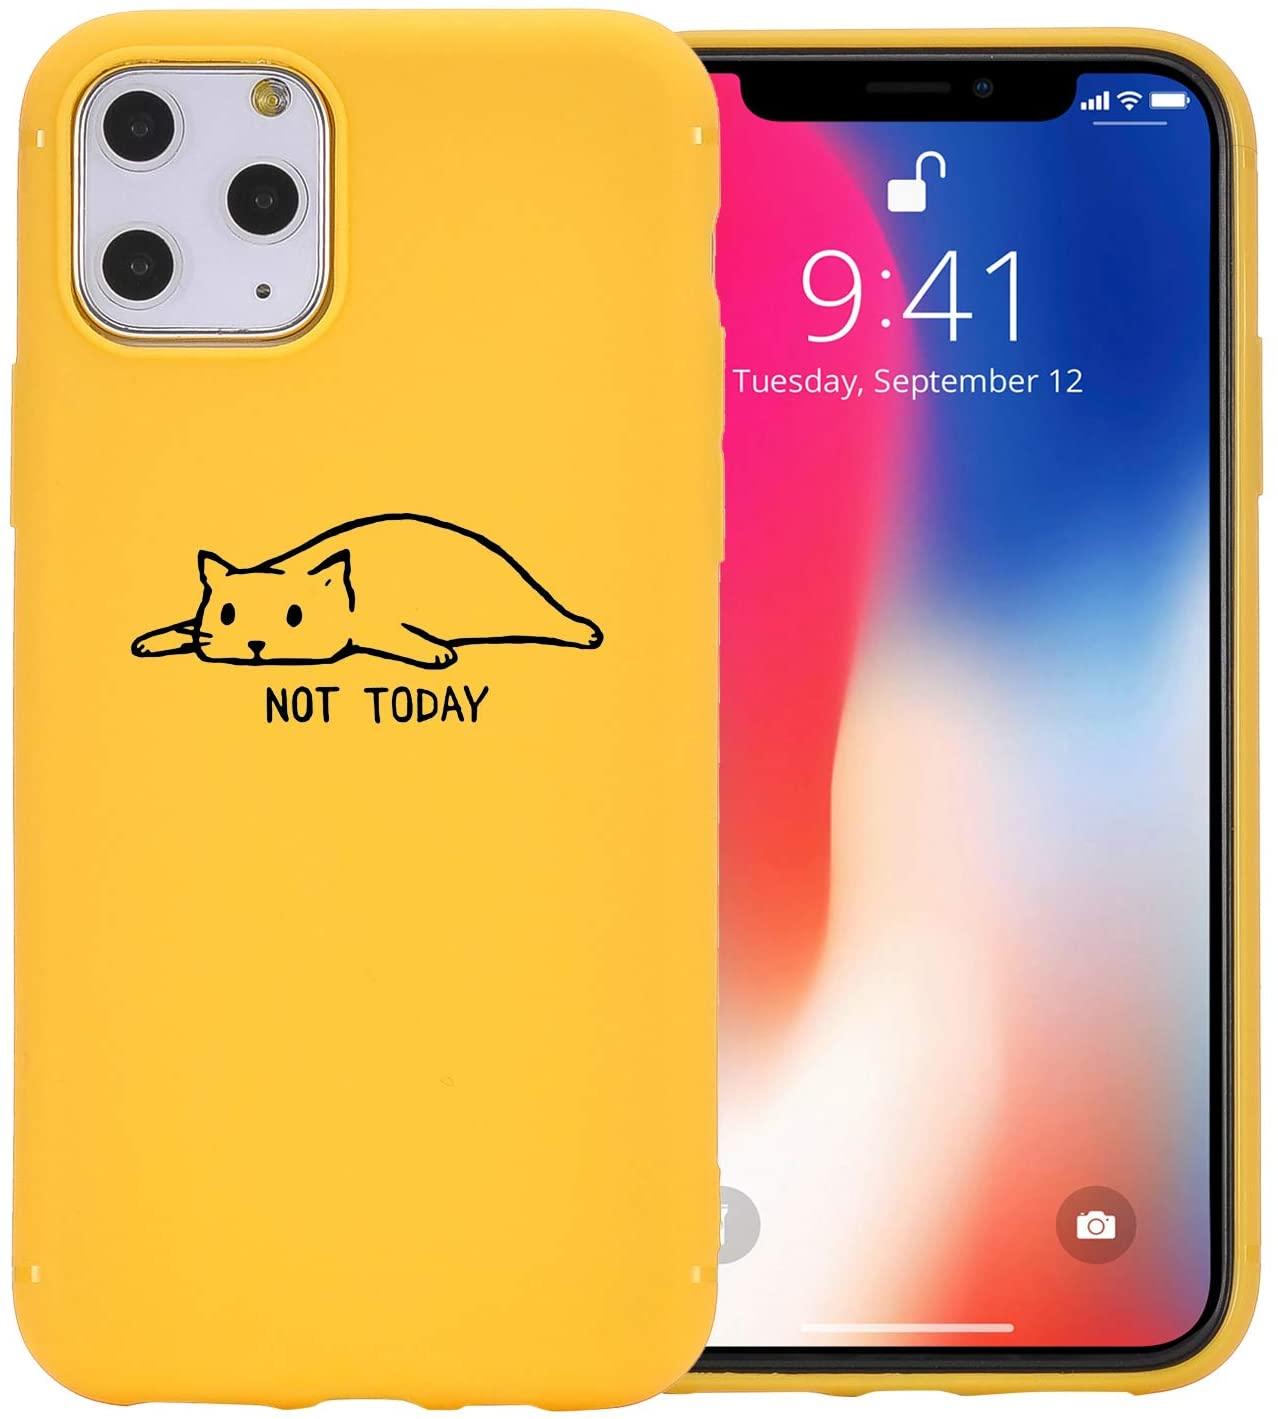 JOYLAND Yellow Cute Phone Case Cover for iPhone SE 2020/iPhone 7/iPhone 8 Lovely Funny Cat Not Today Cartoon Phone Case Cover Silica Gel Bumper Yellow Shell for iPhone 7/iPhone 8/iPhone SE 2020